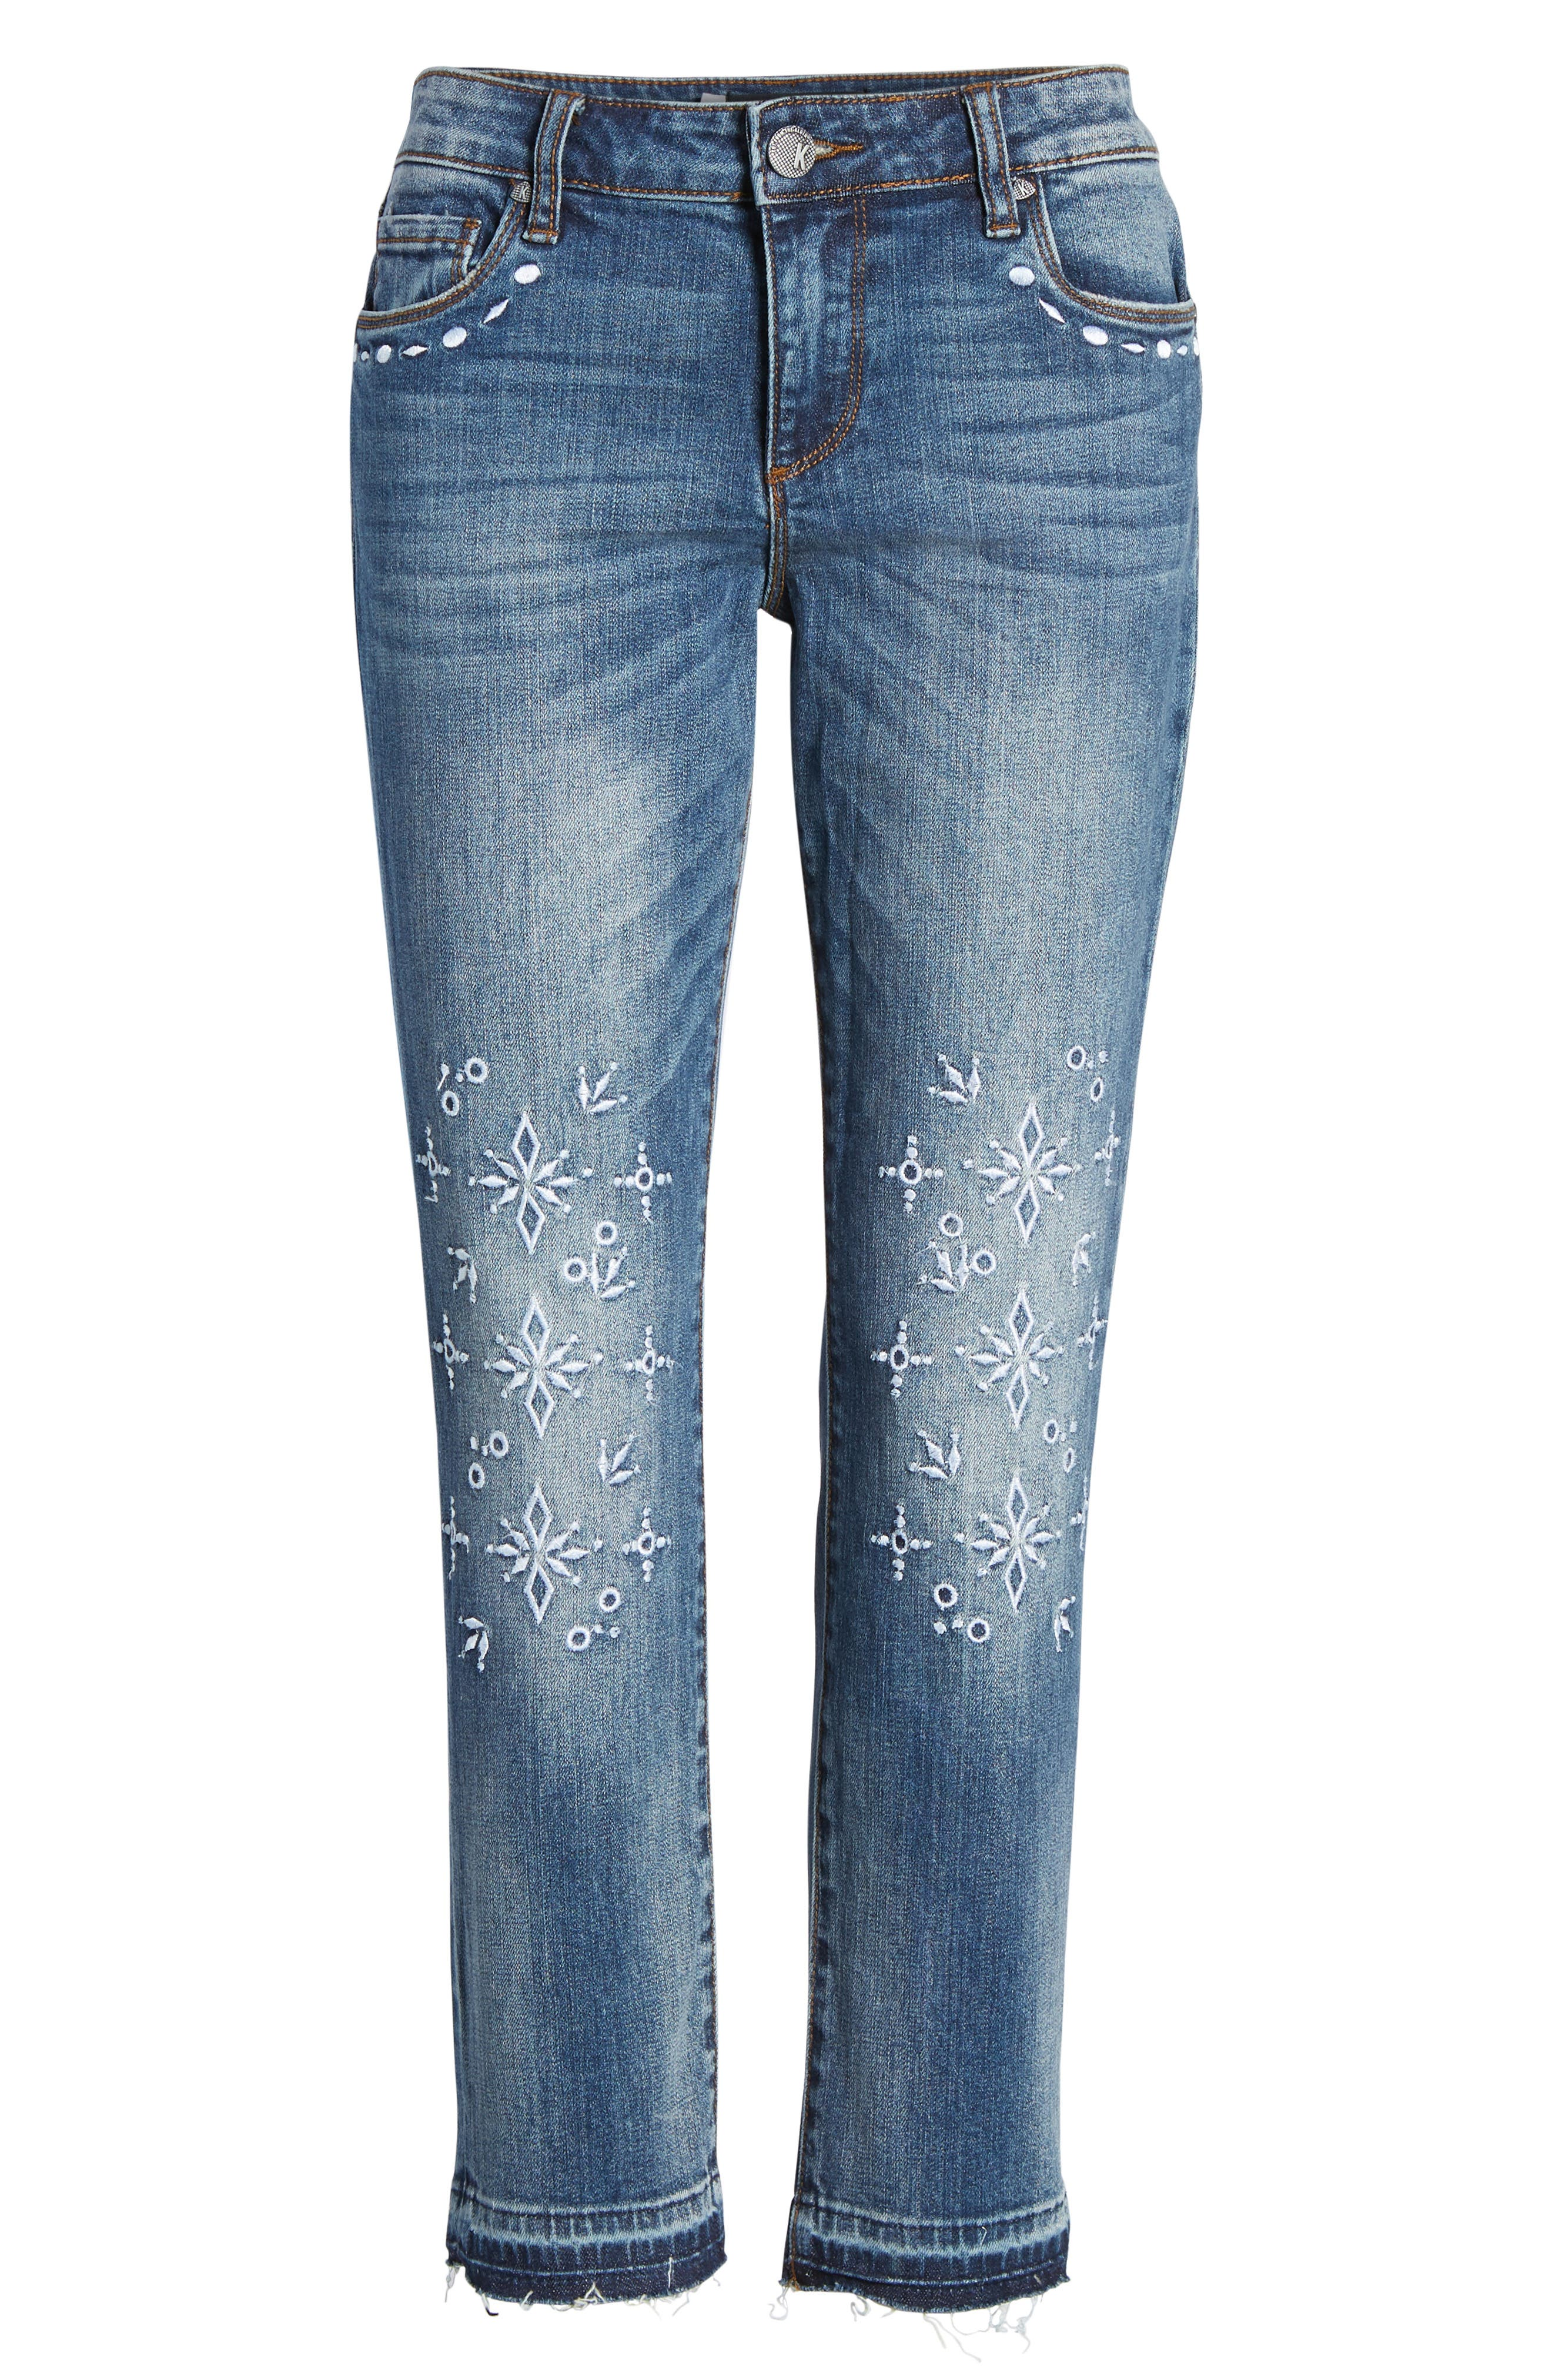 Reese Release Hem Embroidered Jeans,                             Alternate thumbnail 7, color,                             Originated